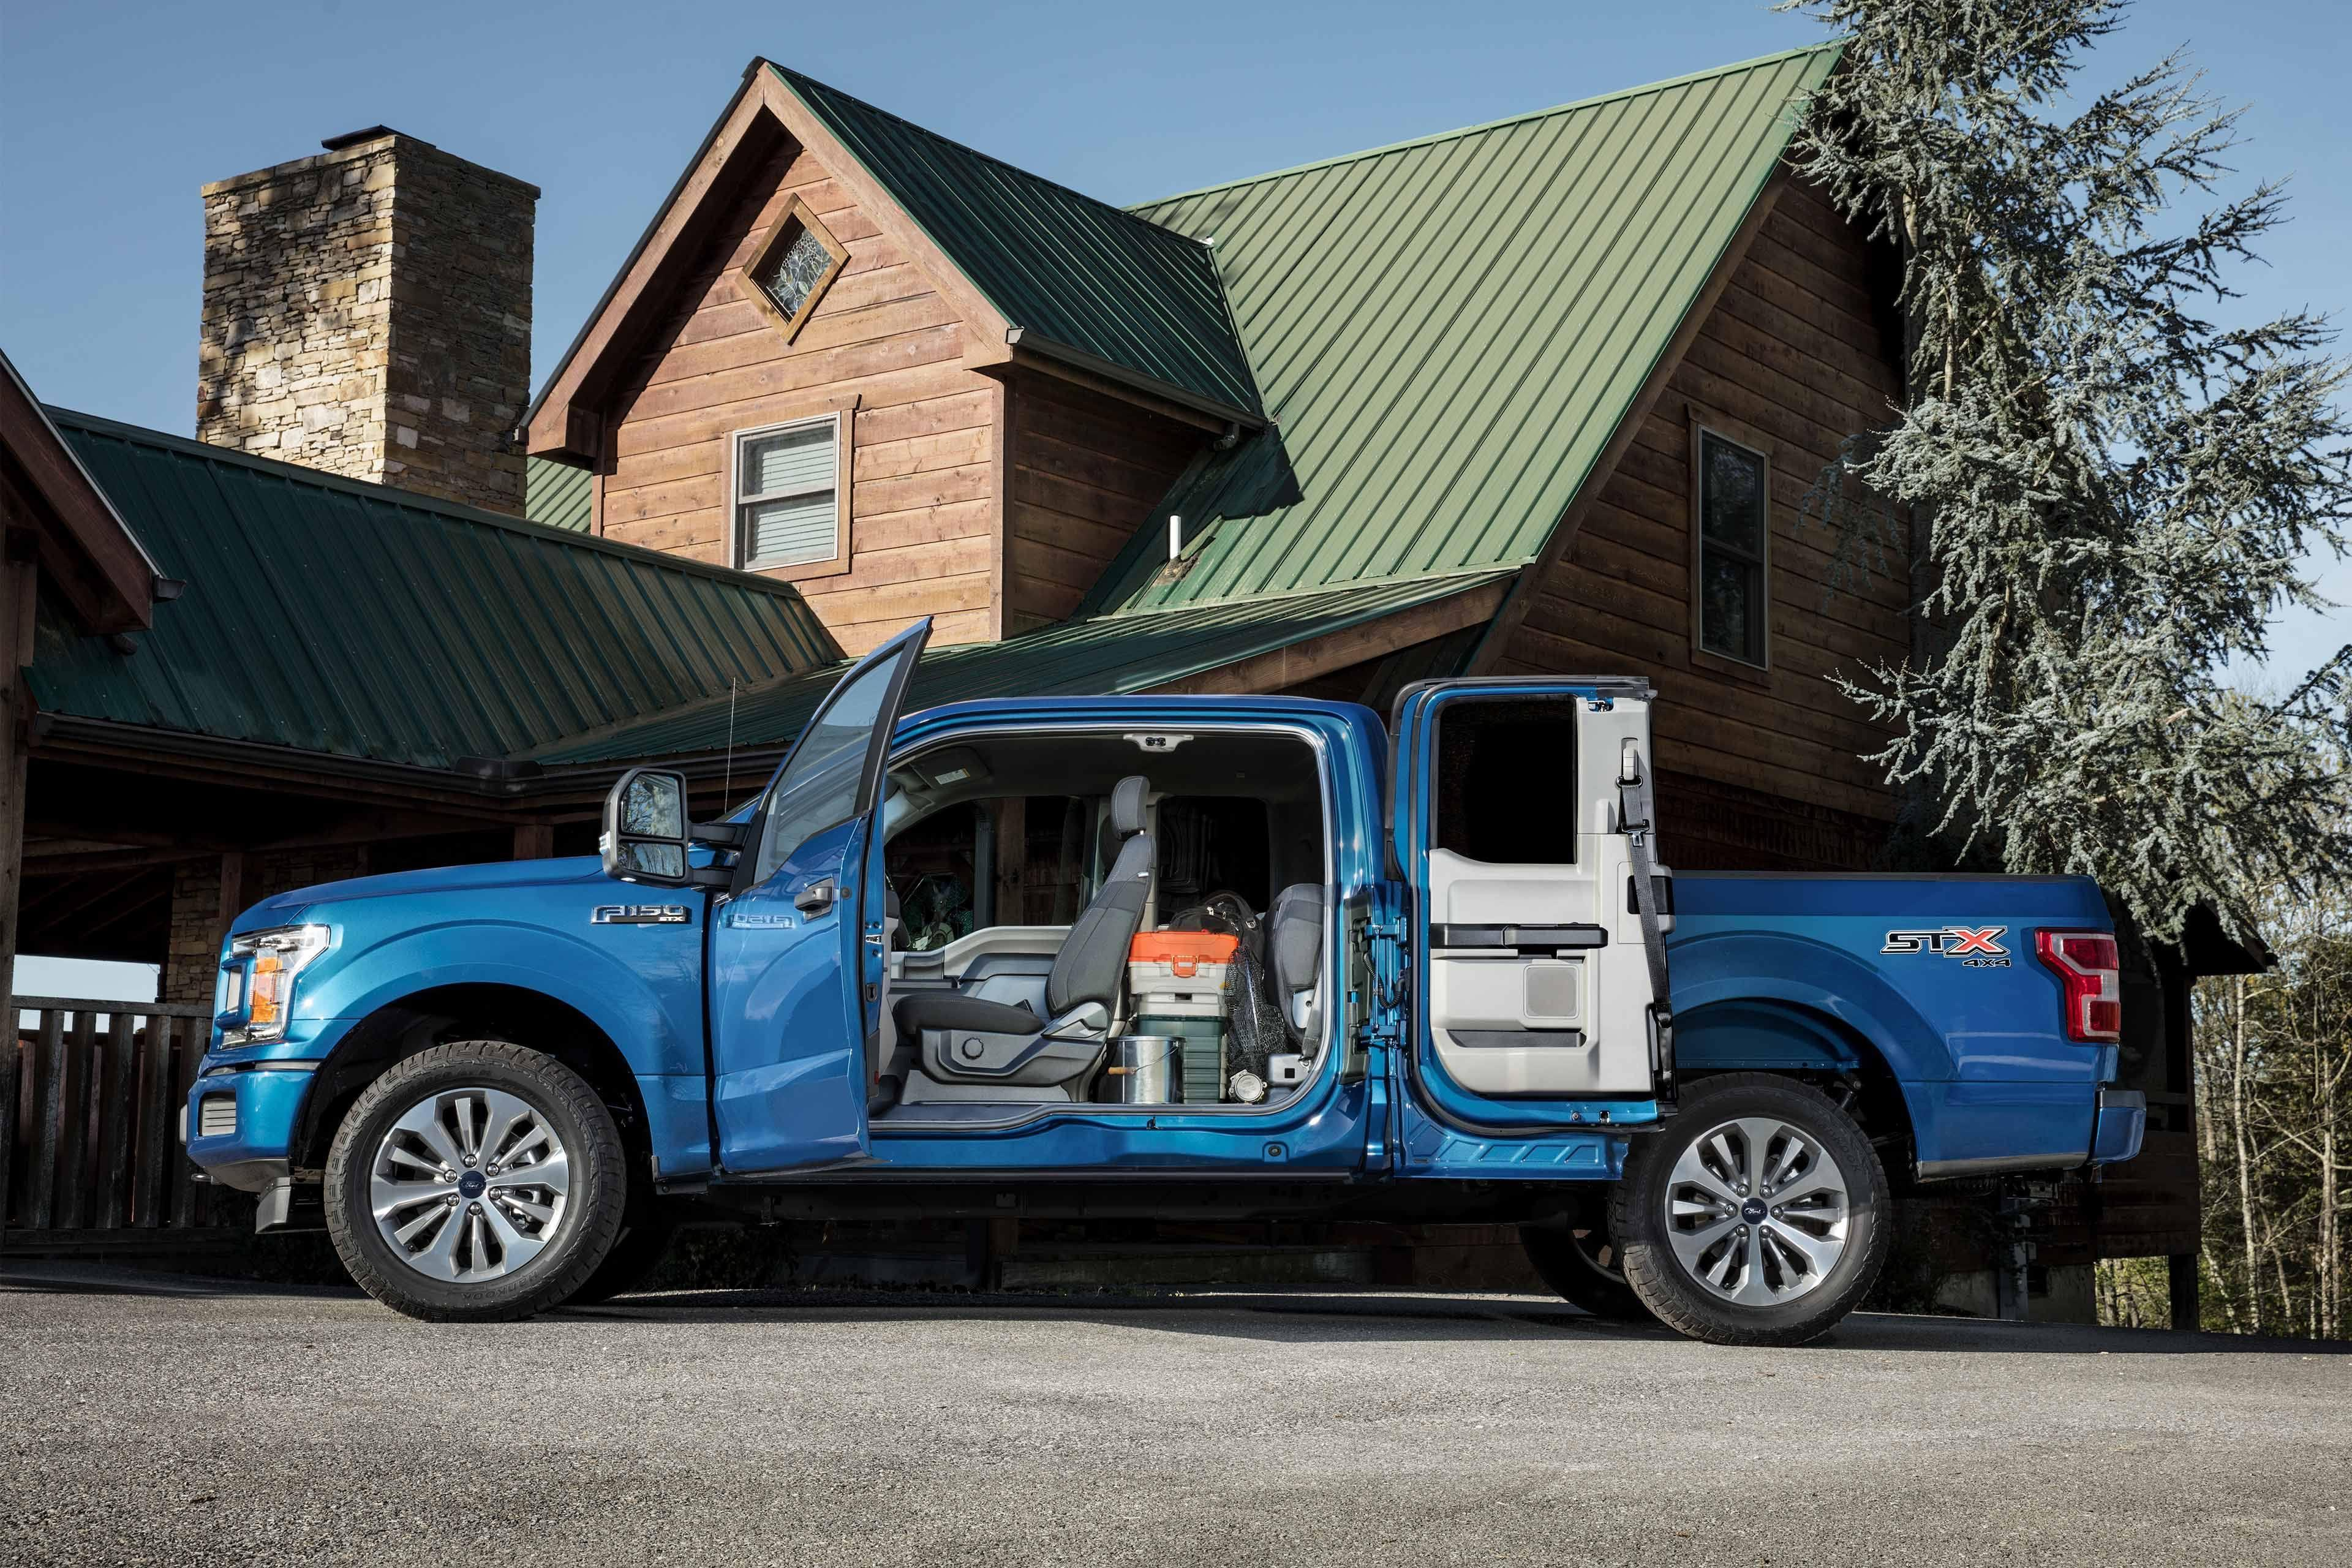 2019 Ford F-150 XLT SuperCrew in blue and side door to second row from Cabot Ford Lincoln in St. John's, Newfoundland and Labrador (NL)